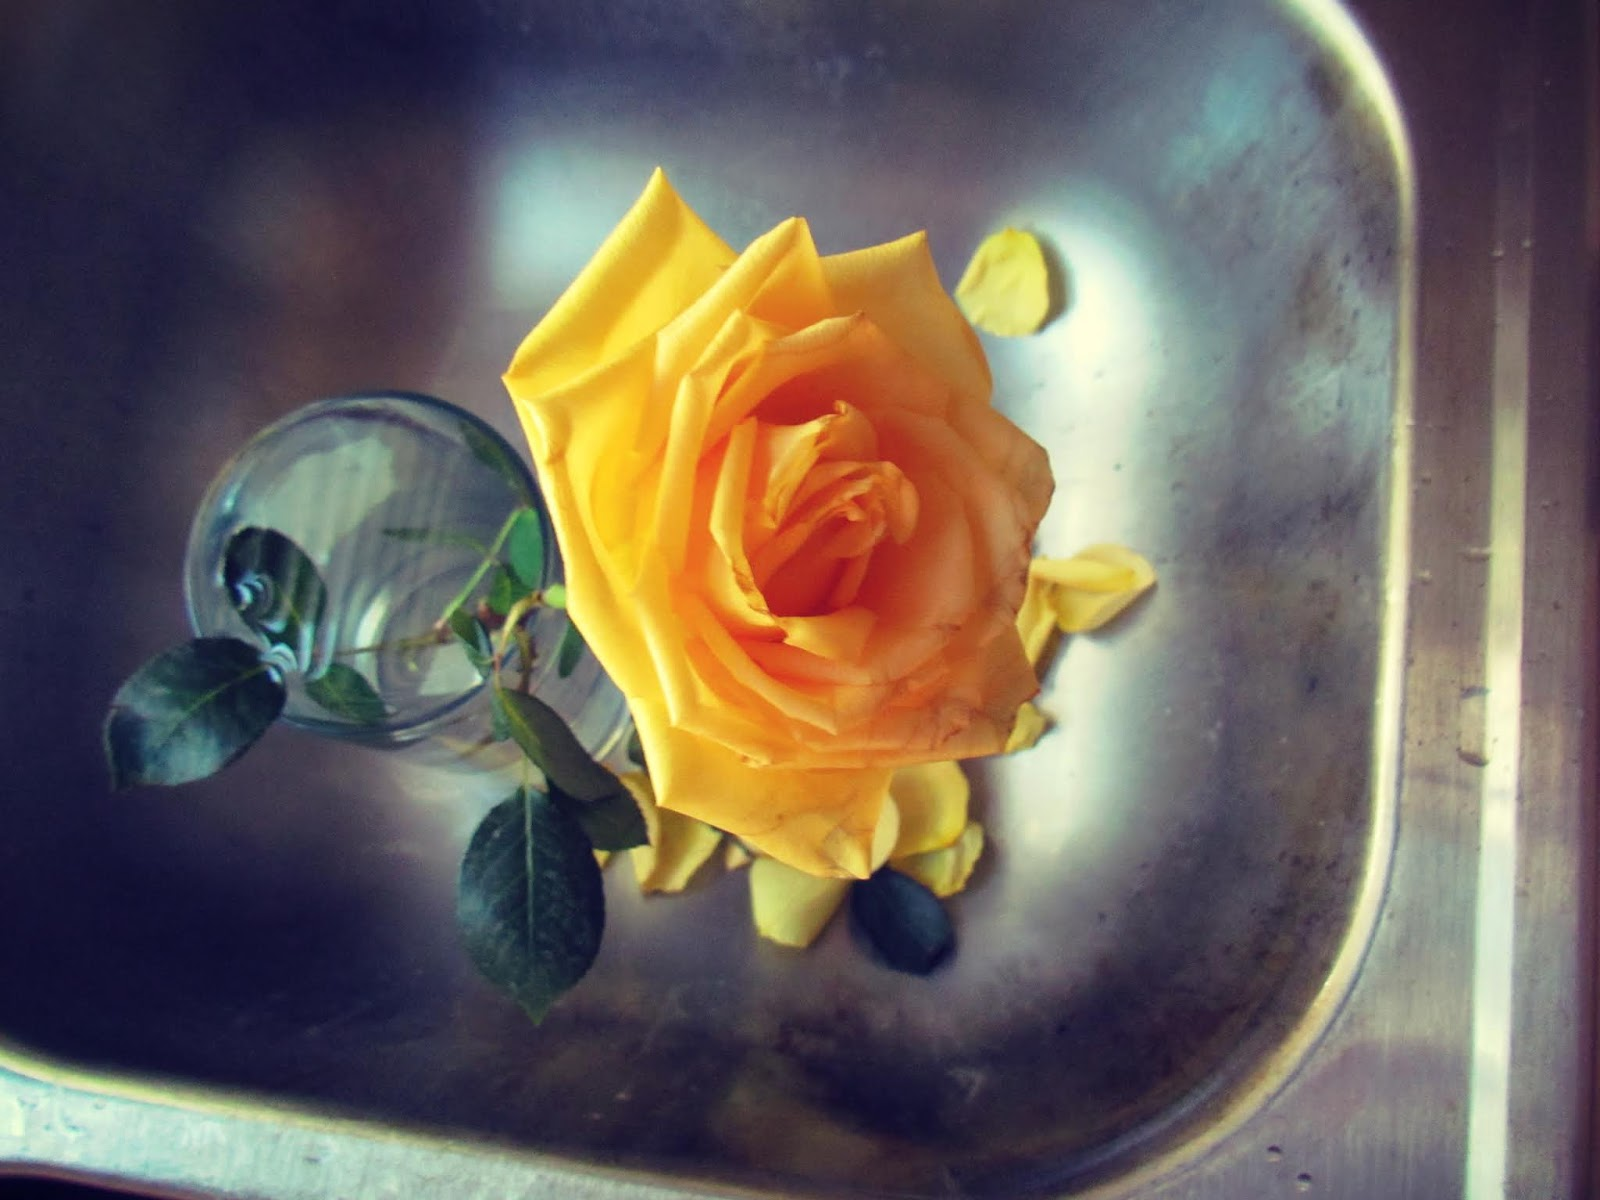 A yellow rose flower in the kitchen sink with rose petals in yellow